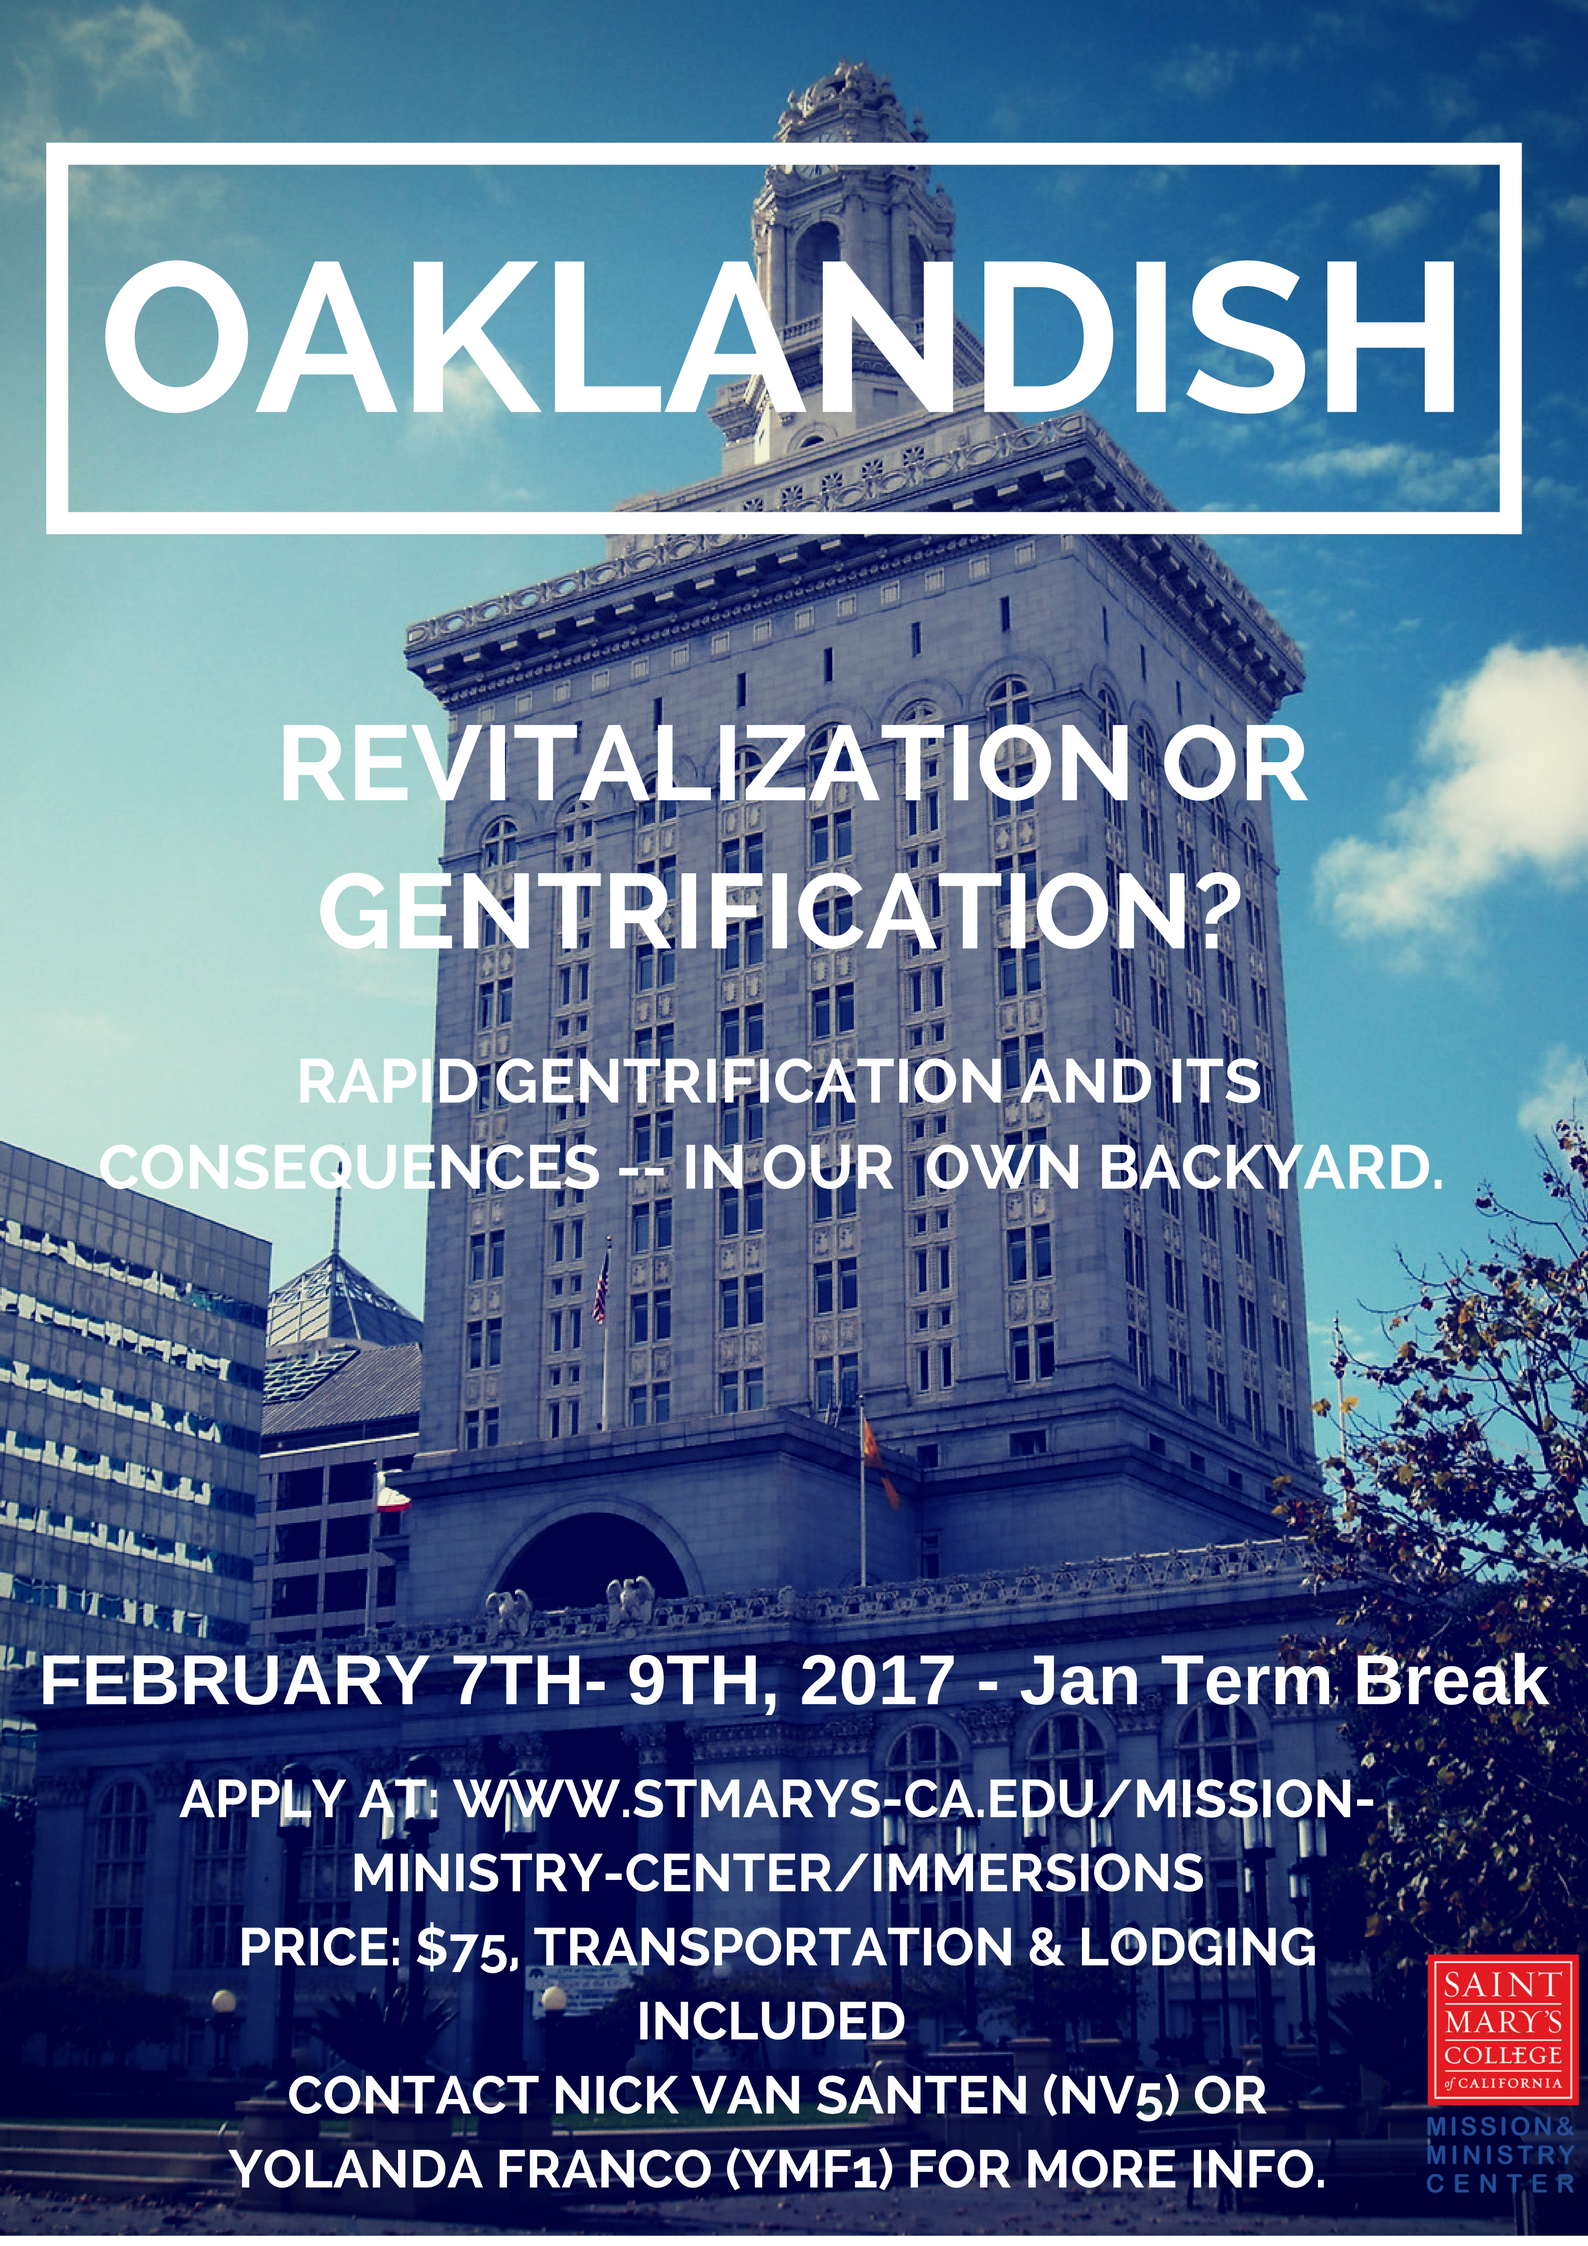 Oaklandish Immersion 2017